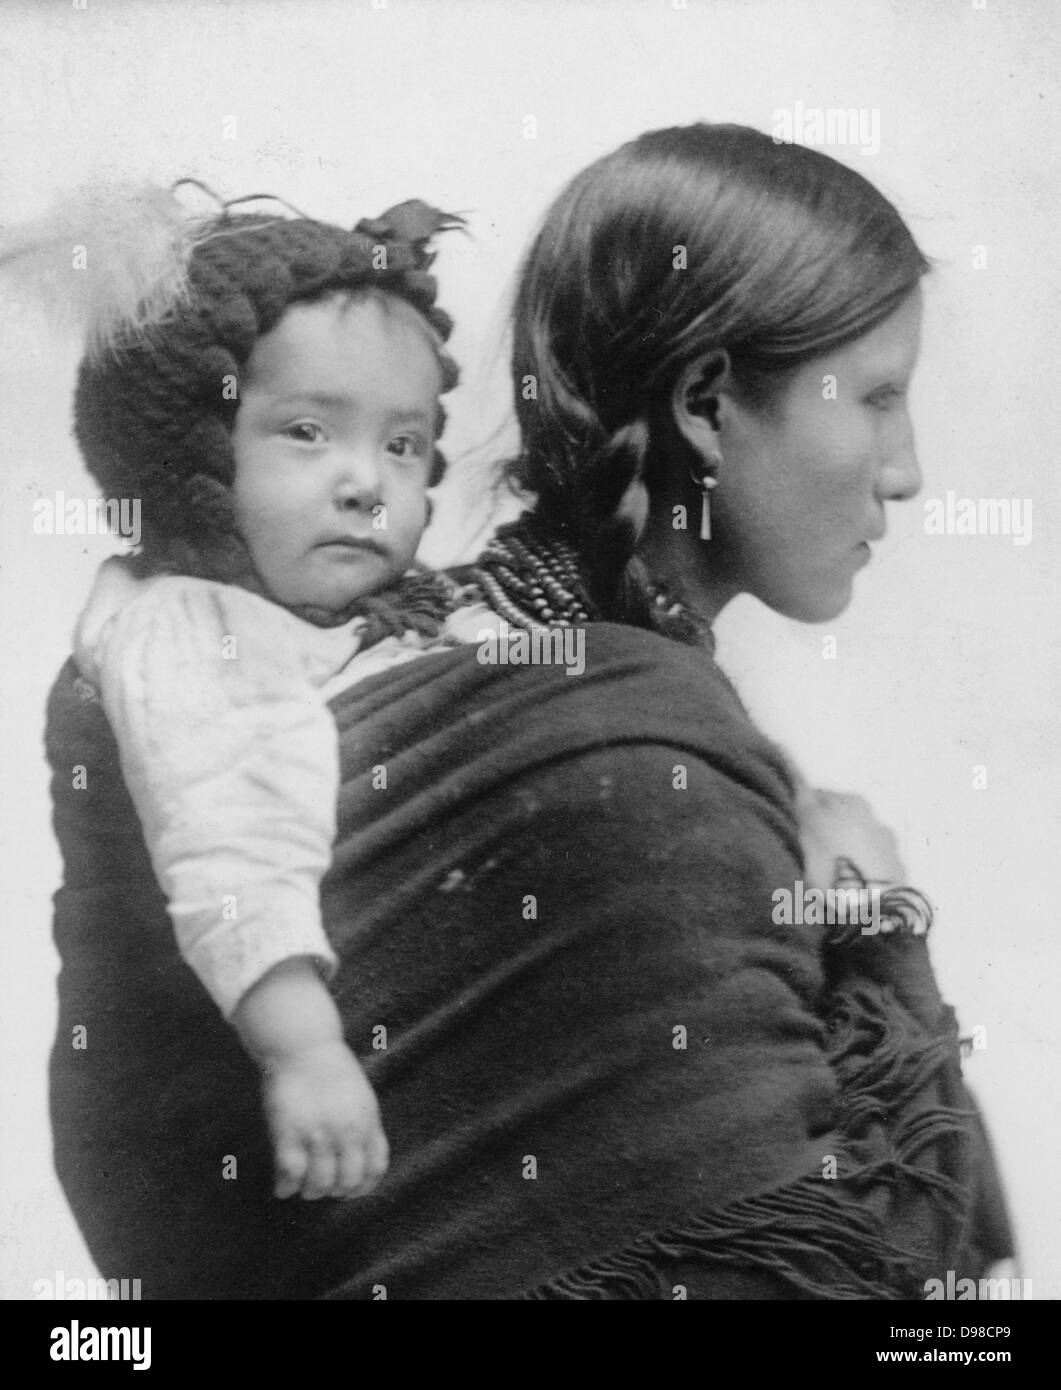 Native American woman from the Plains region, half-length portrait, facing right, with baby on her back. 20th century - Stock Image